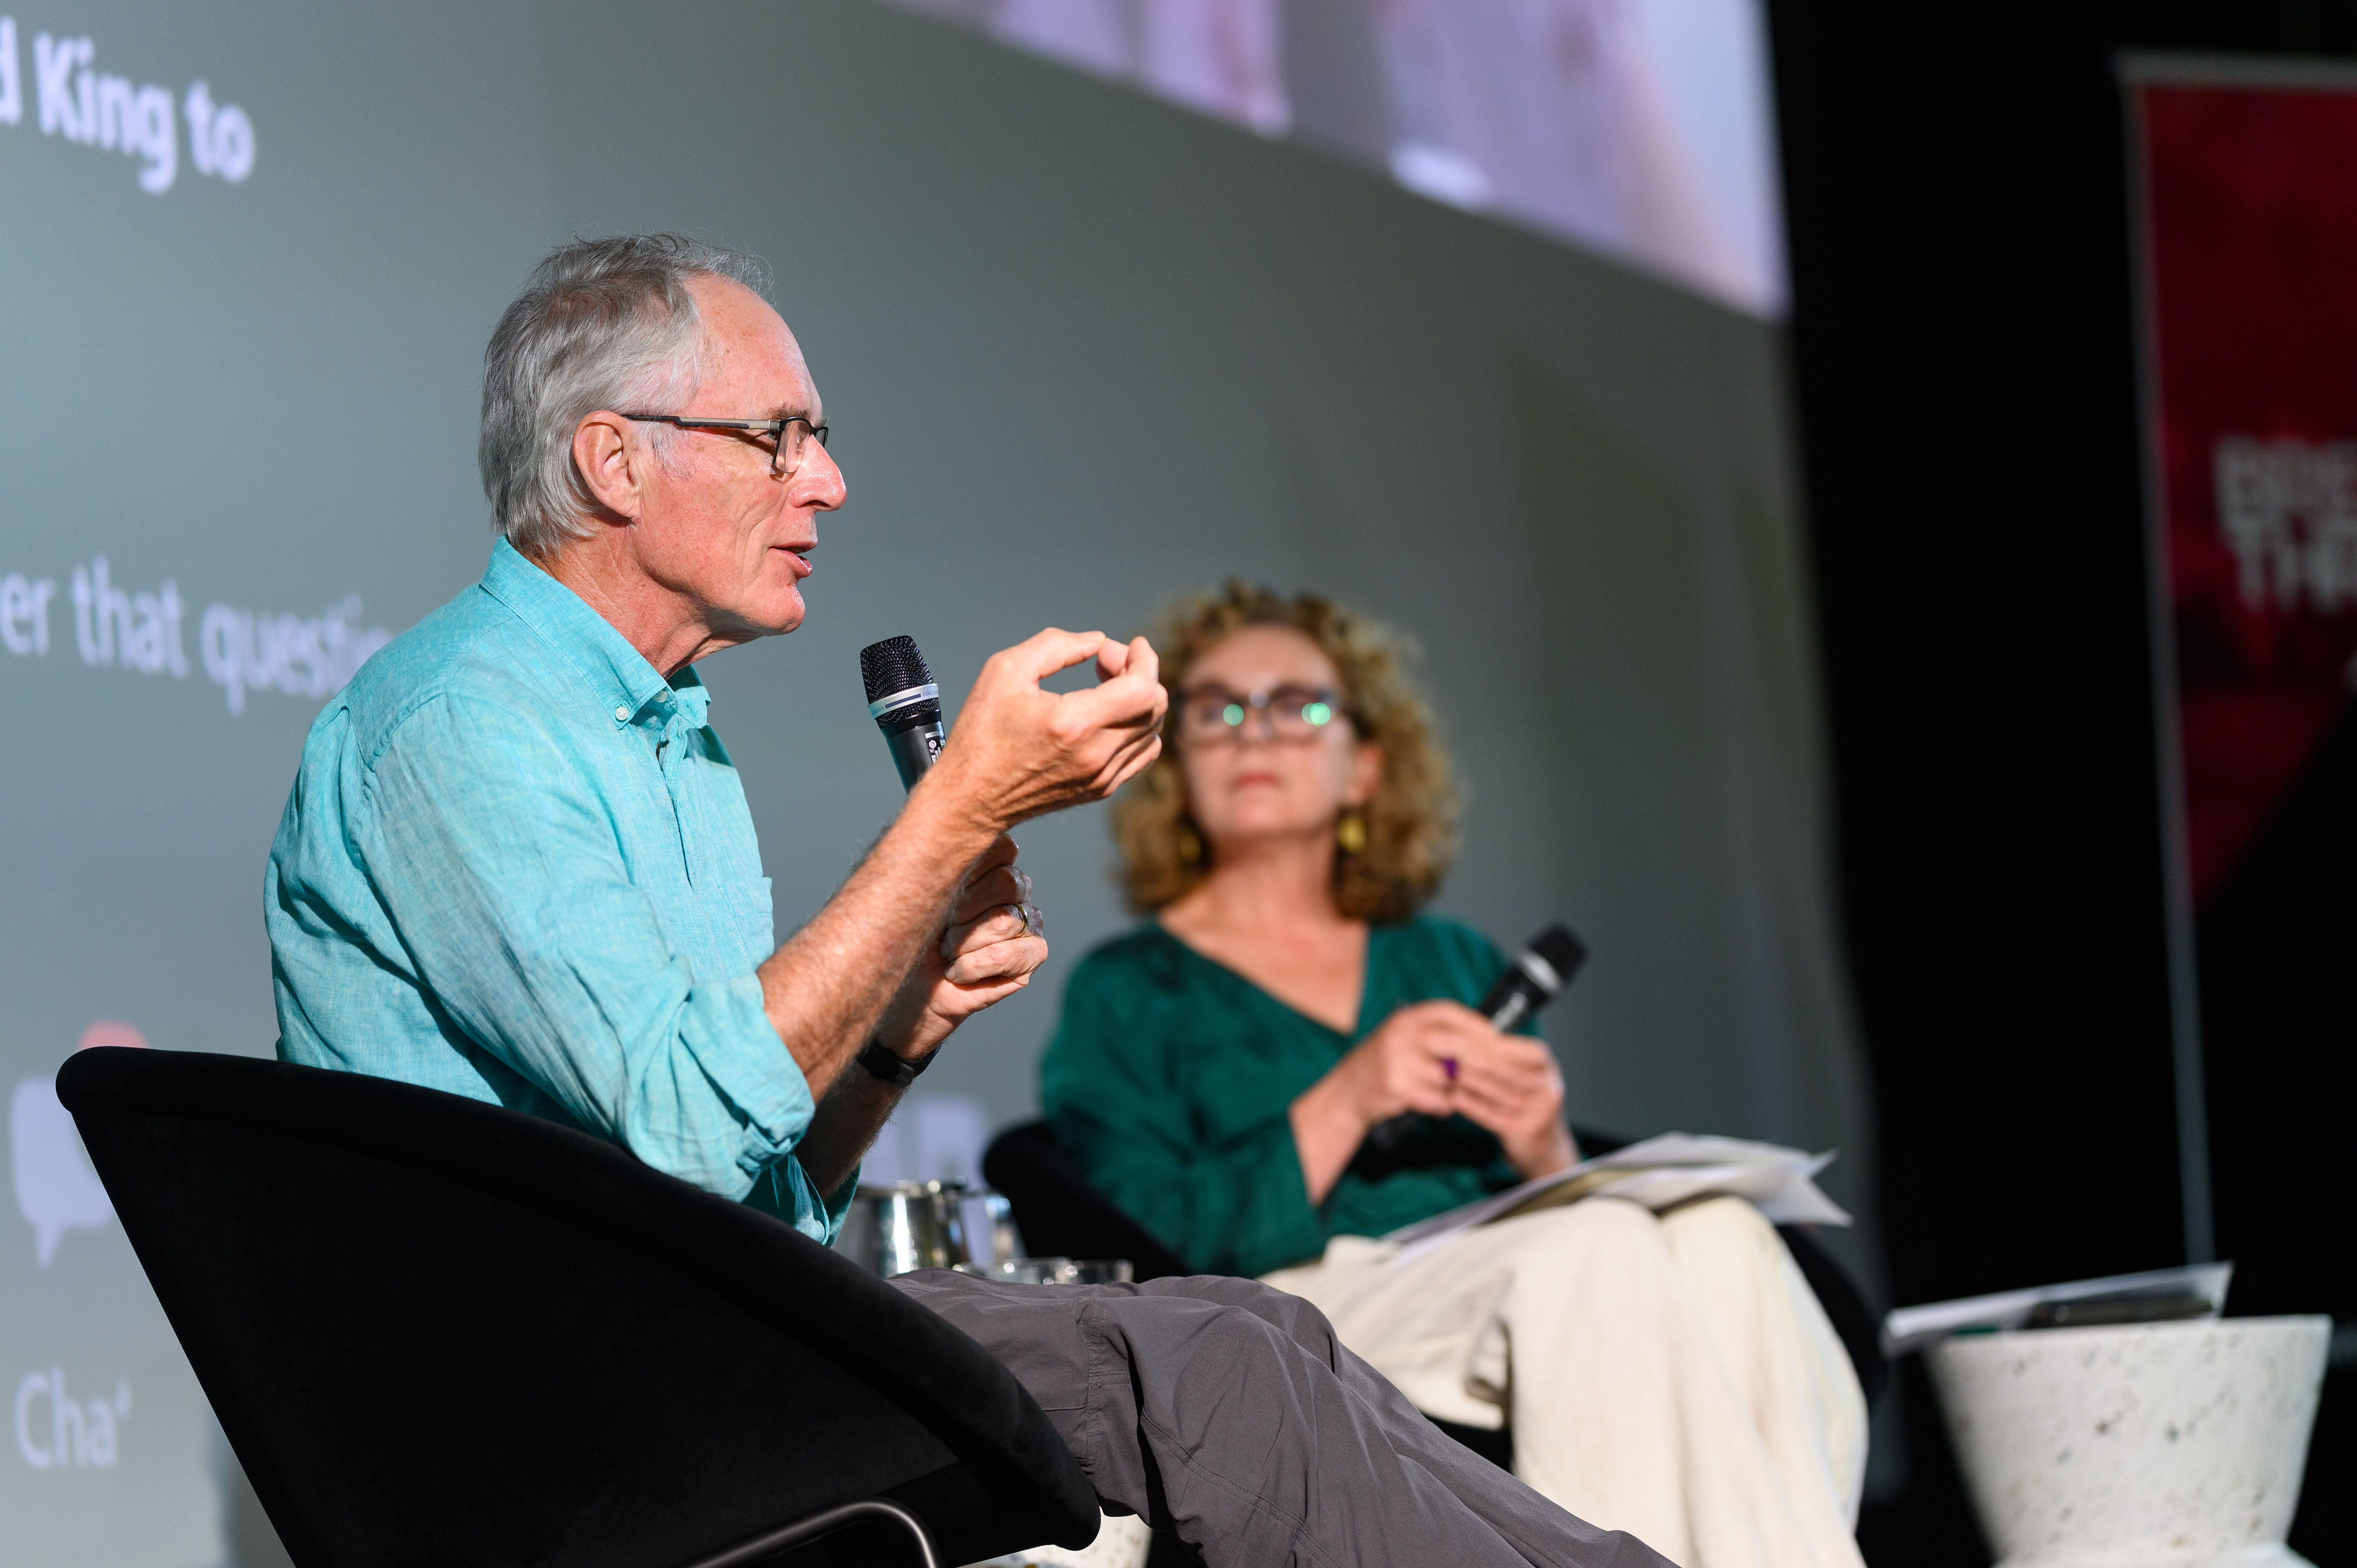 Climate analyst and esearch director at the Breakthrough National Centre for Climate Restoration David Spratt, with session moderator Jo Chandler, editor of The Citizen and science journalist. Image: Julian Meehan